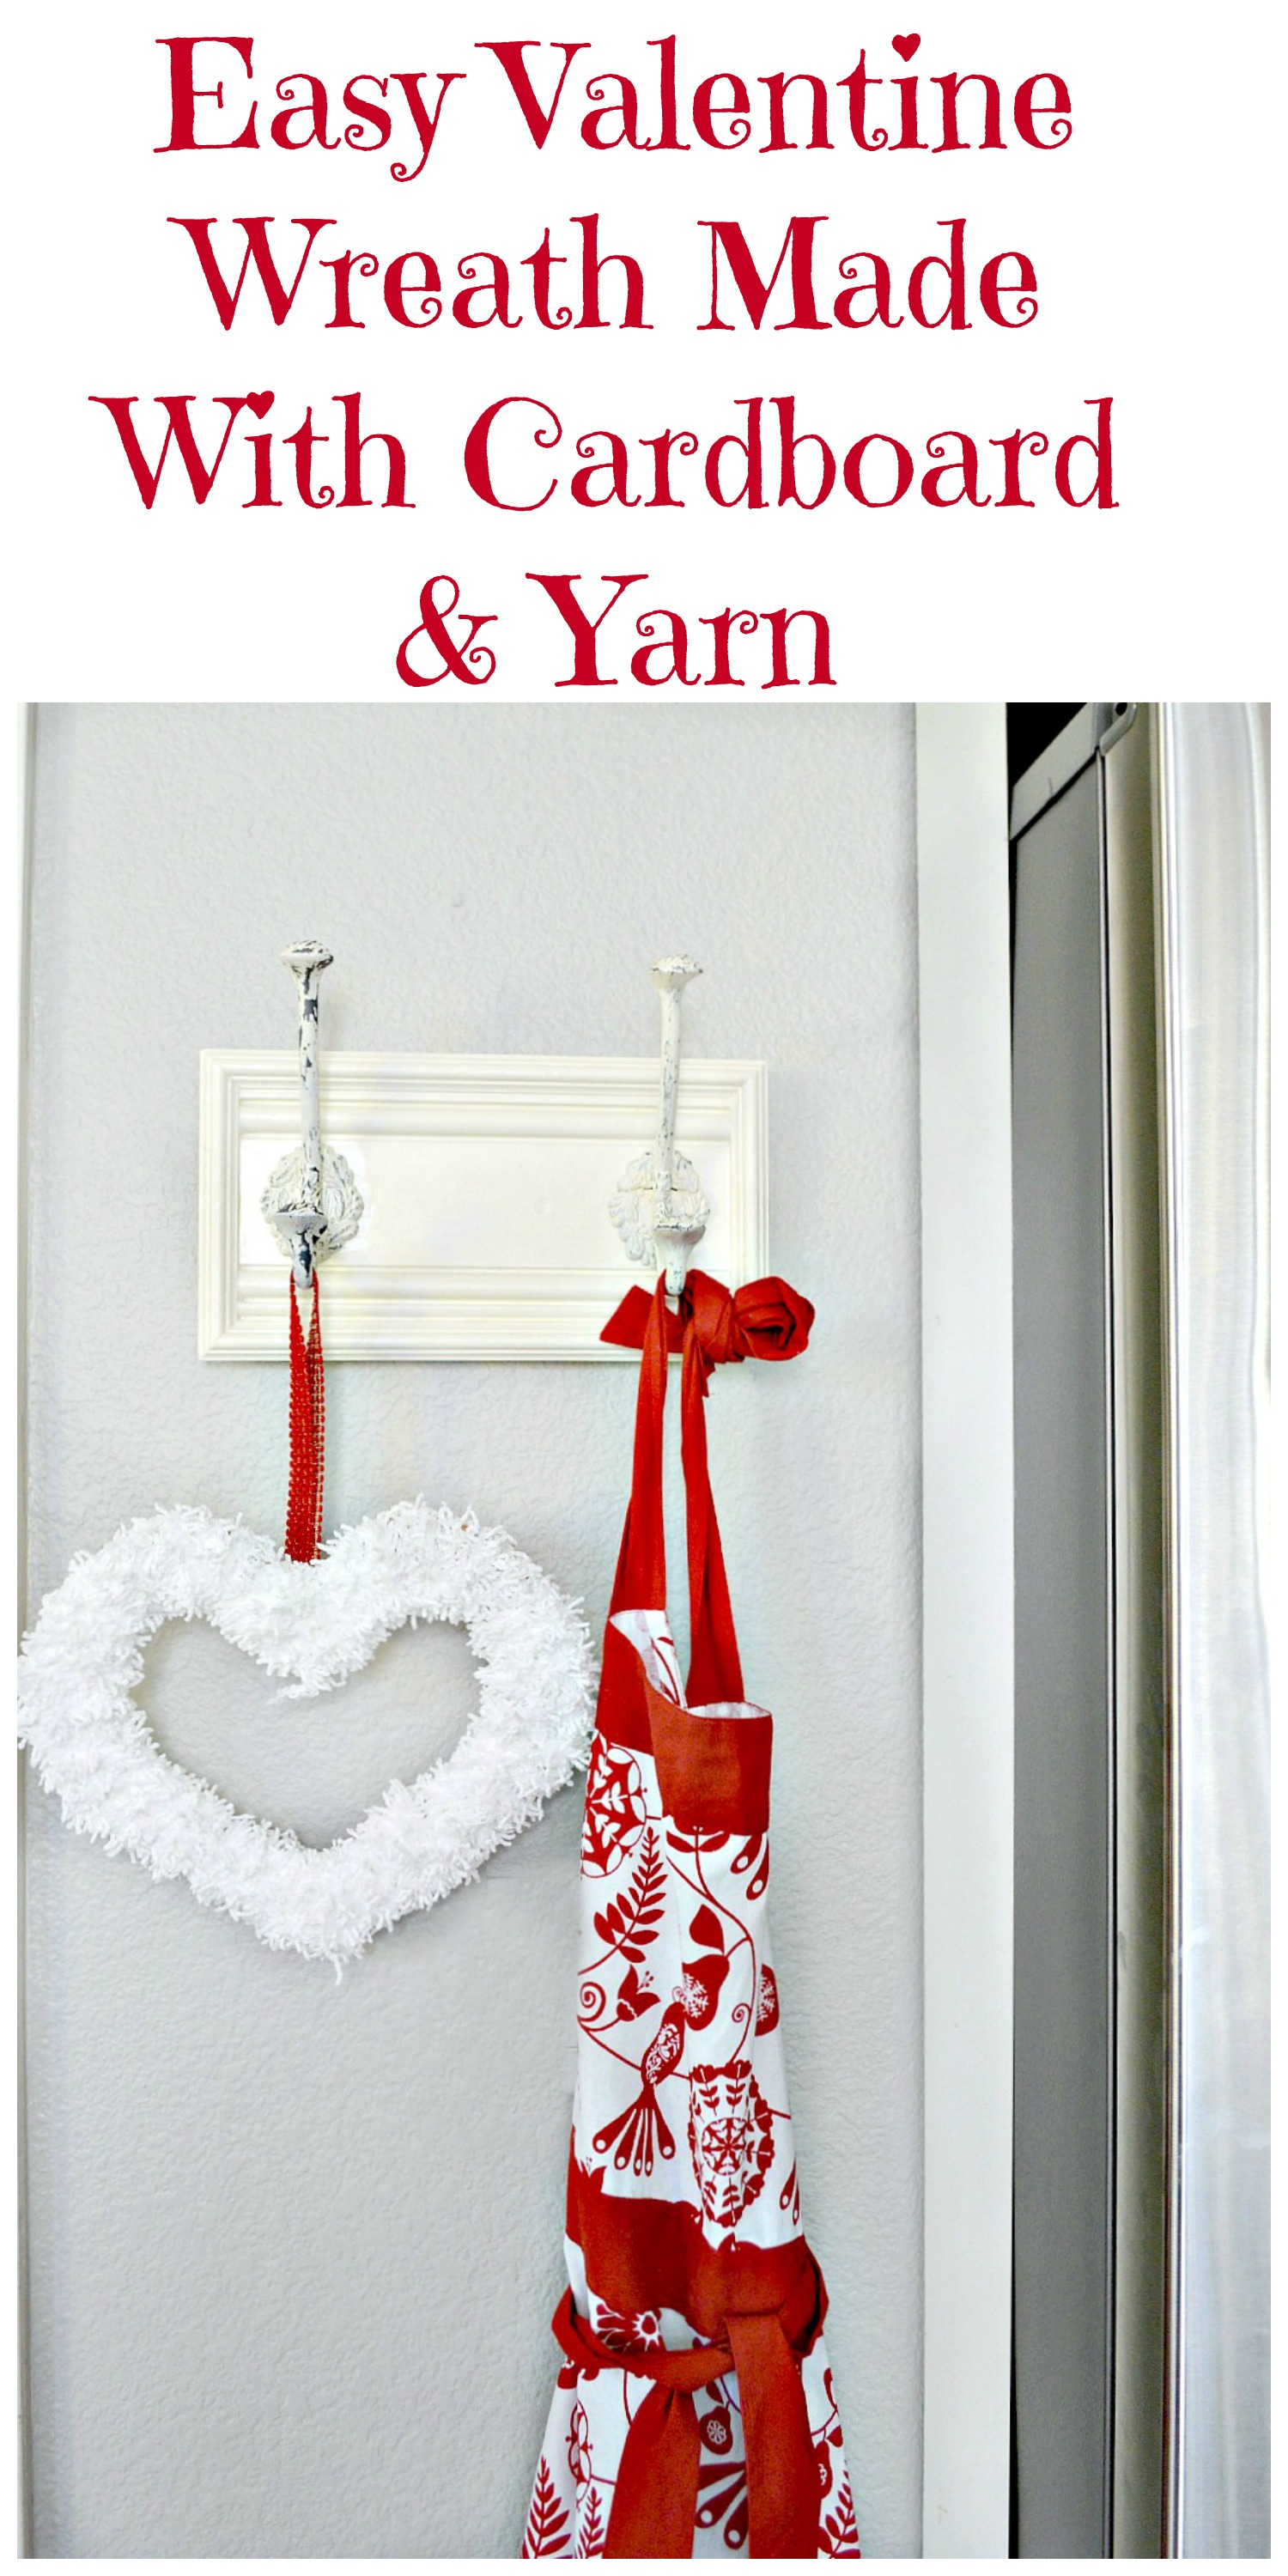 learn-how-to-make-this-valentines-wreath-so-simple